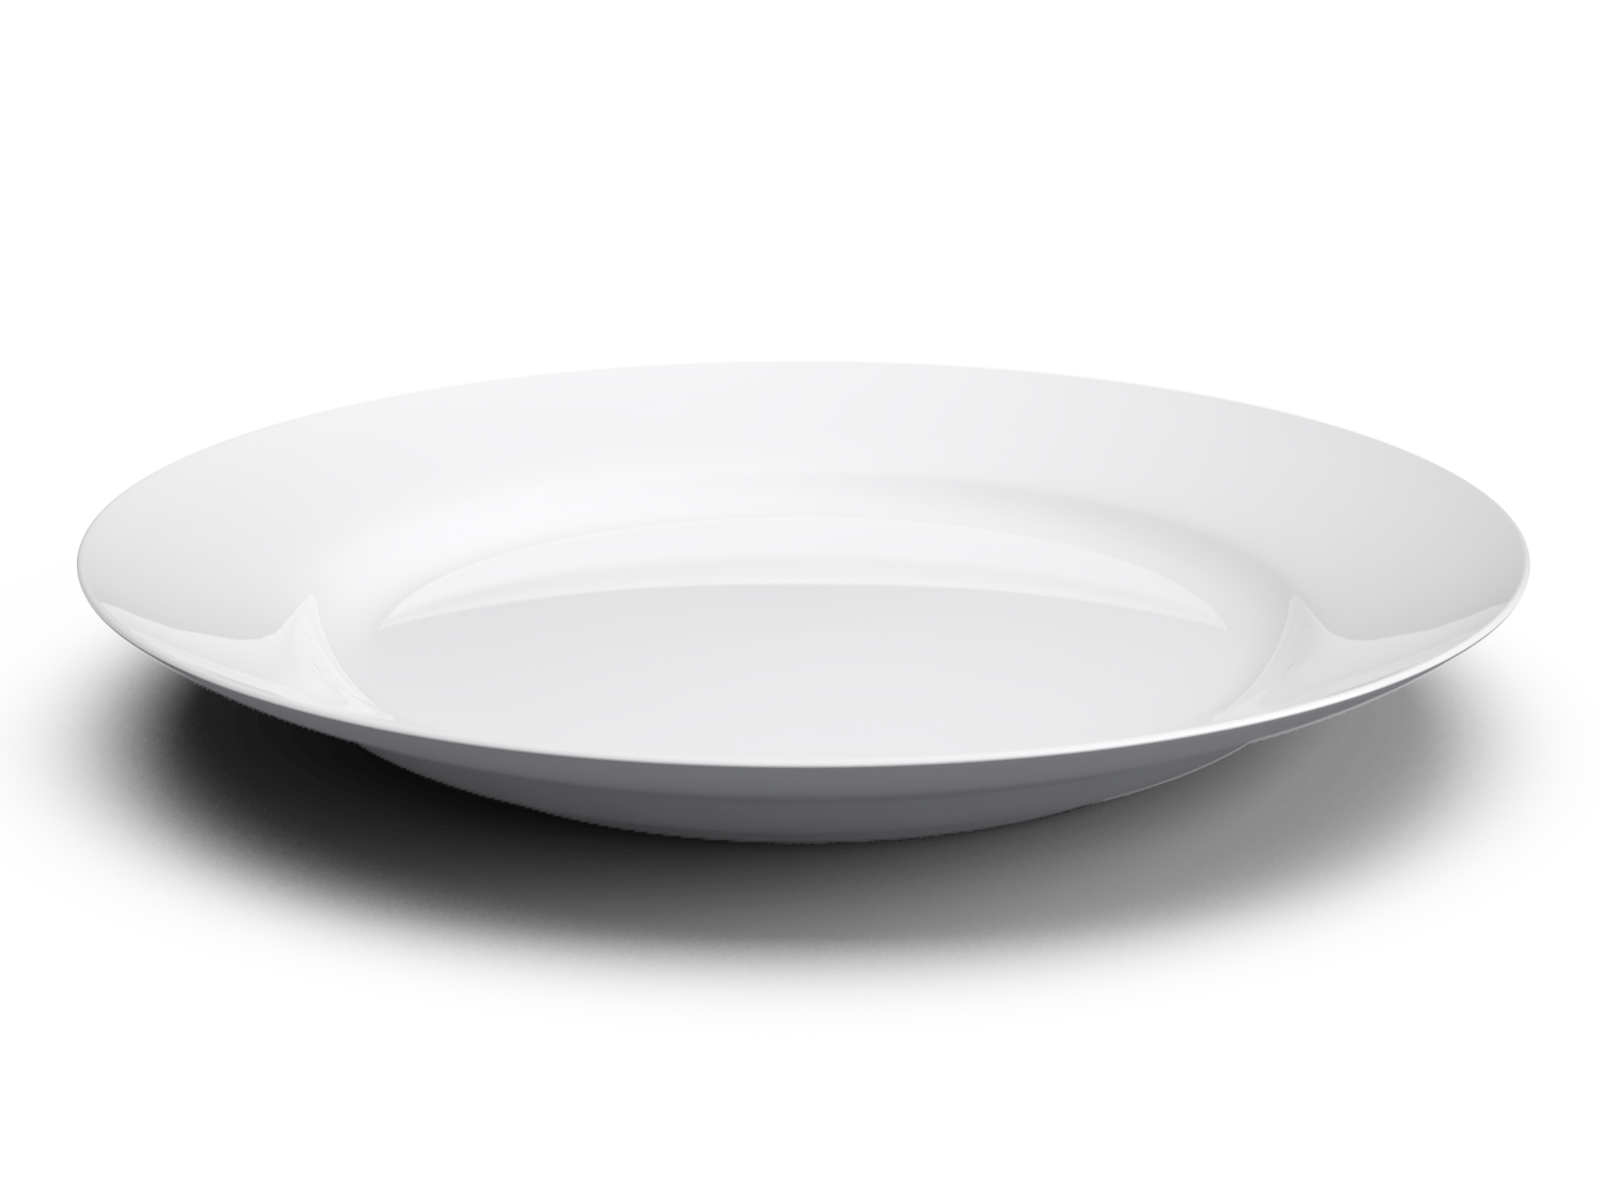 White Basic Plate With Shadow Png Image Purepng Free